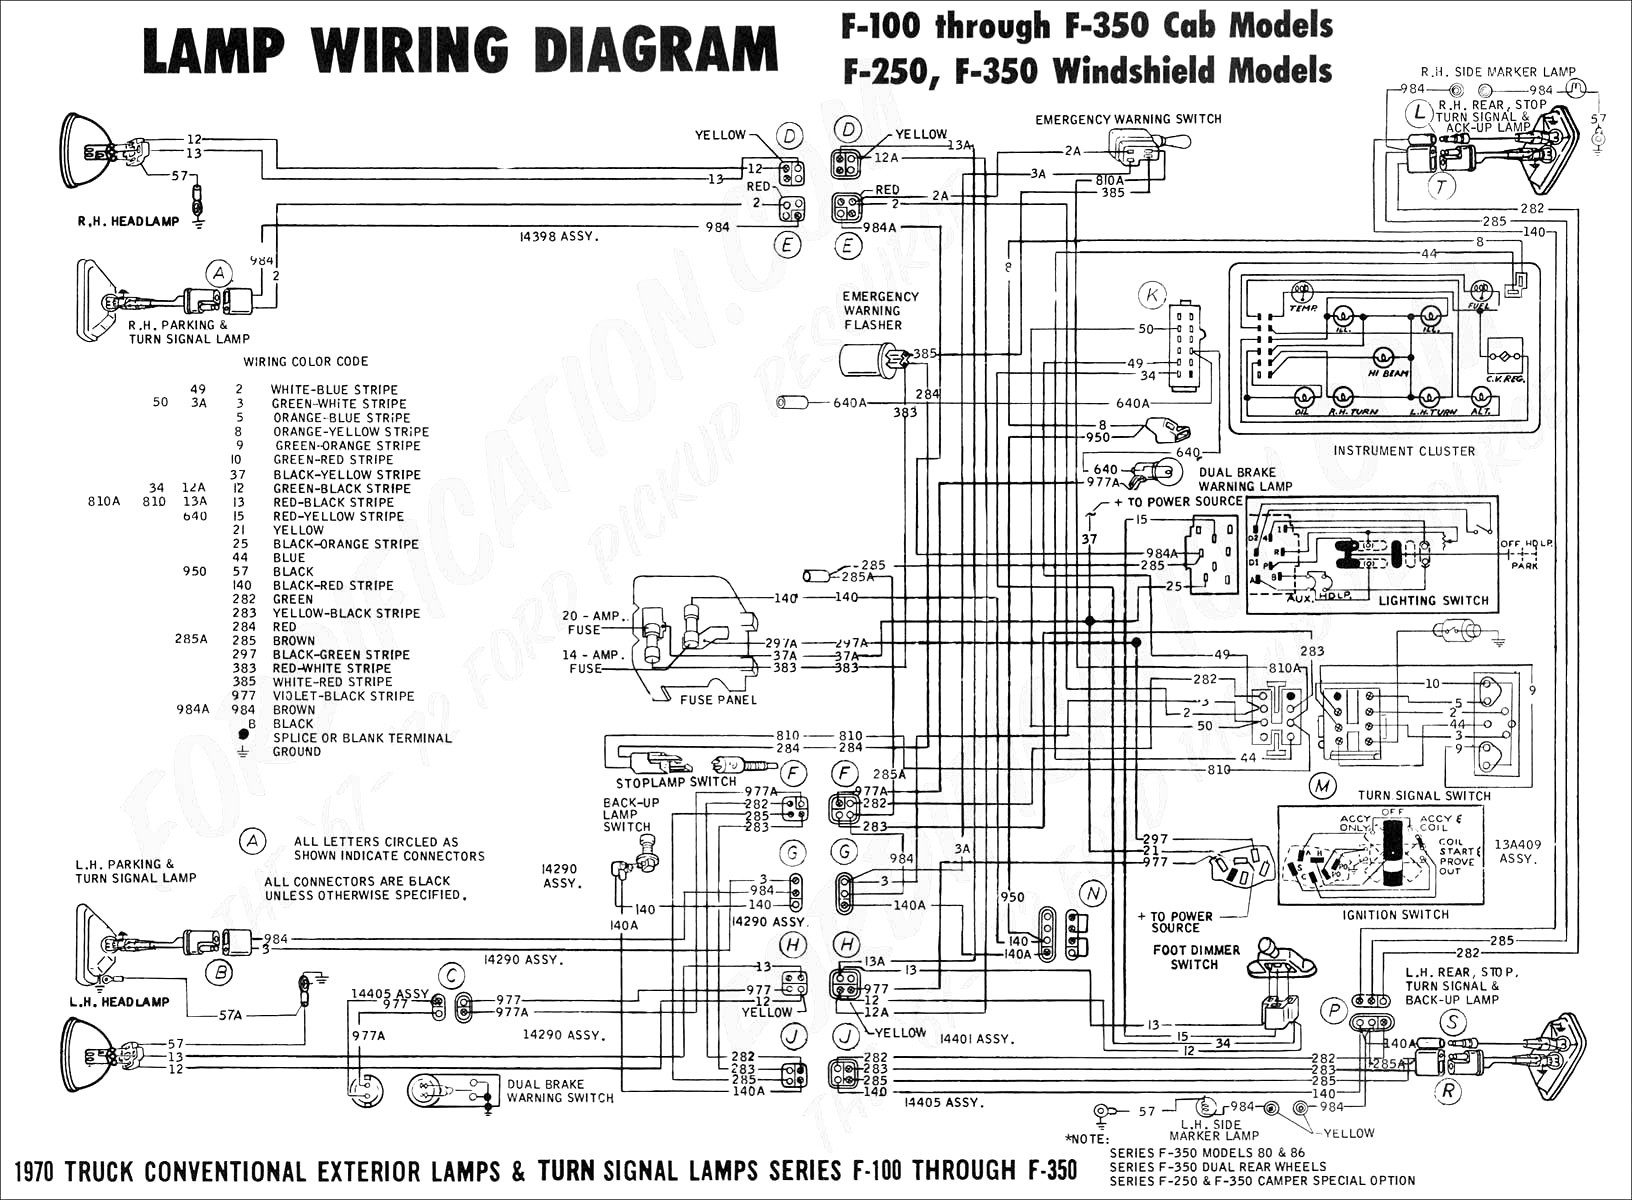 Ford Plug Wiring Diagram | Wiring Diagram - 2001 Ford Mustang Spark Plug Wiring Diagram